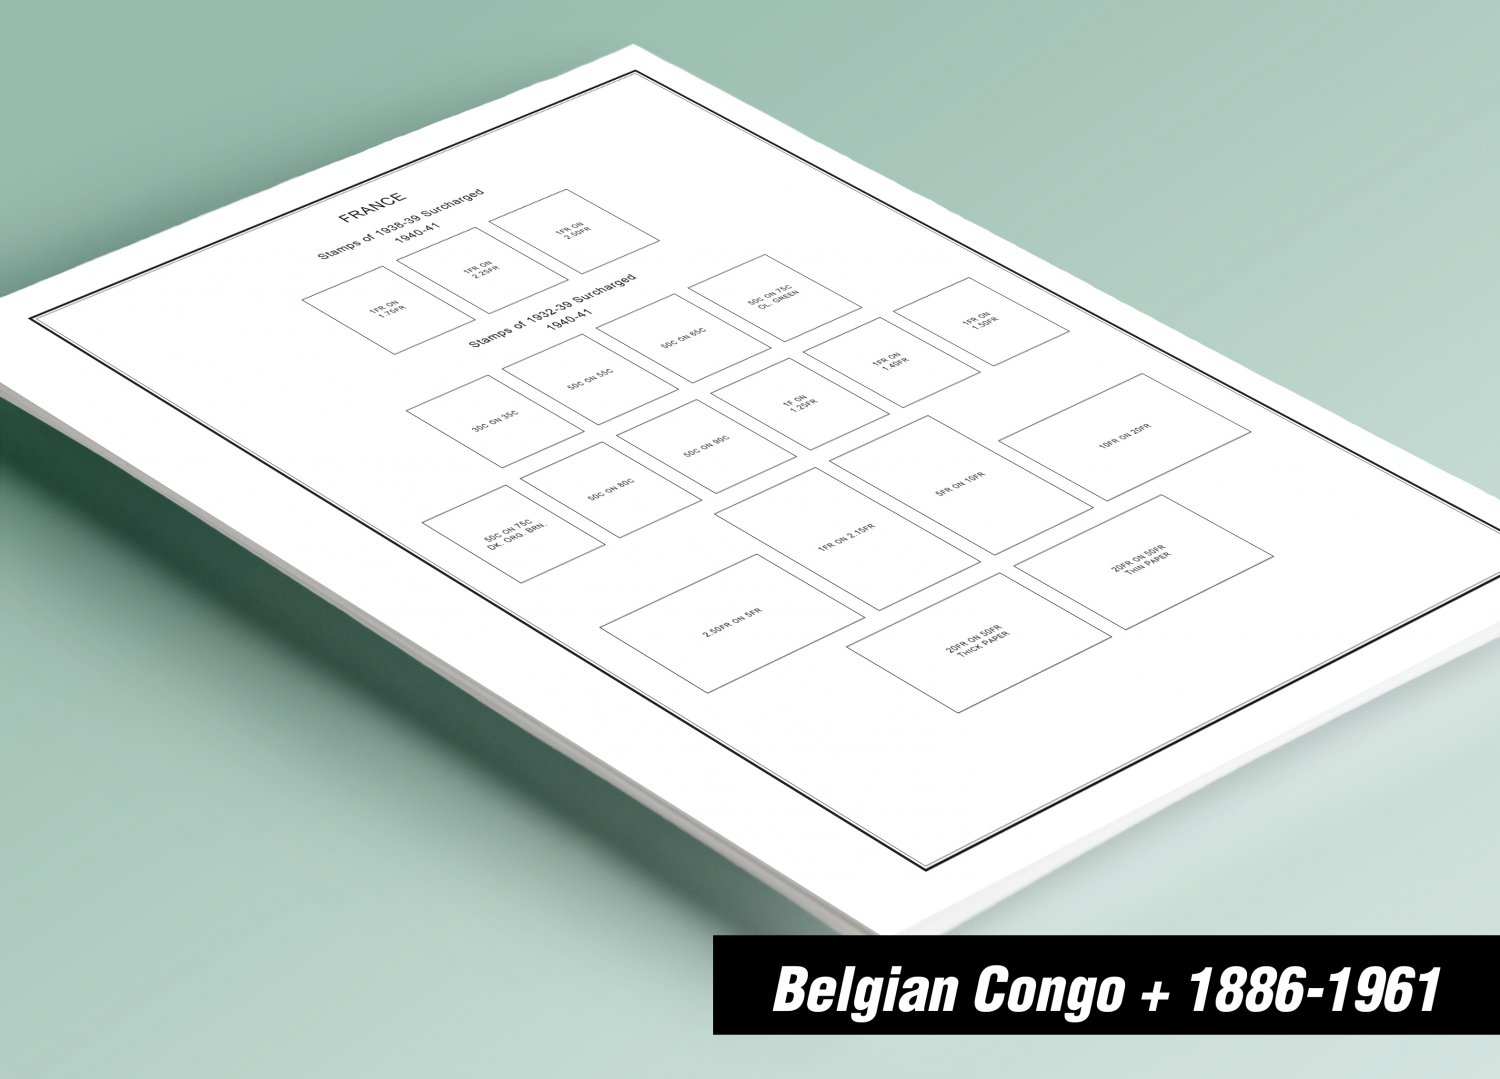 PRINTED BELGIAN CONGO 1886-1957 STAMP ALBUM PAGES (43 pages)